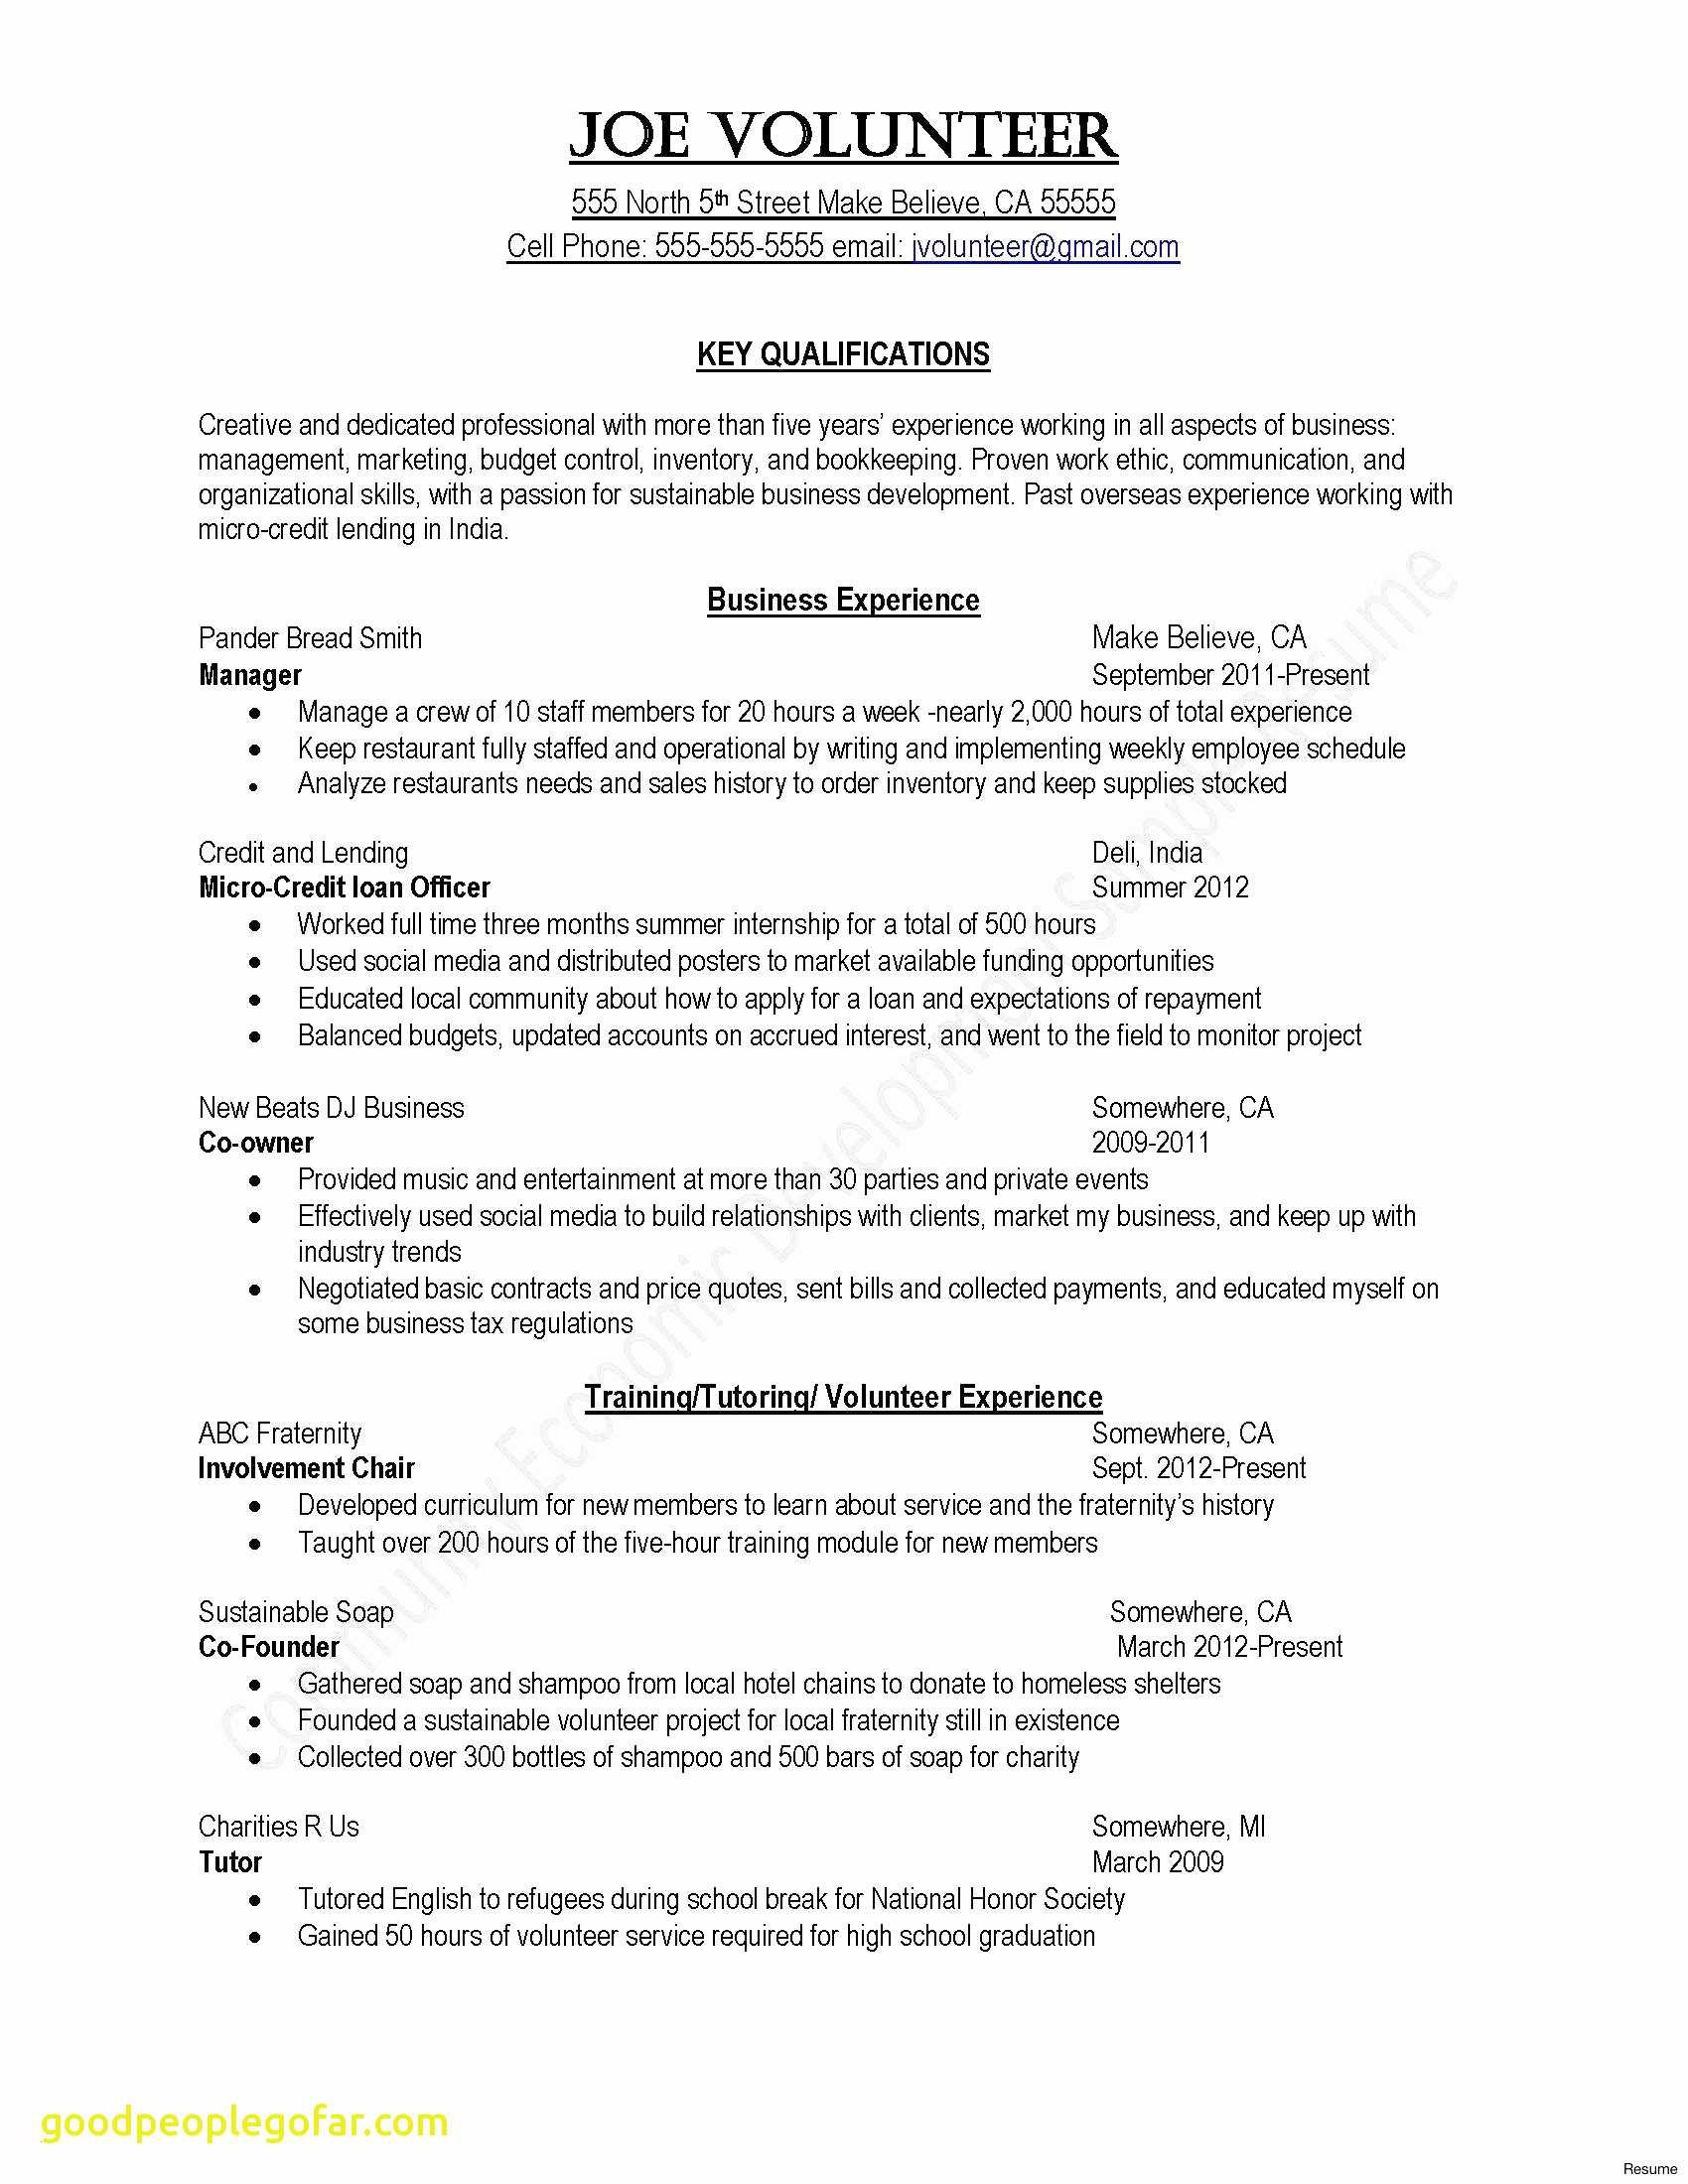 Aviation Resume Services - Accounting Internship Resume Samples Unique Sample College